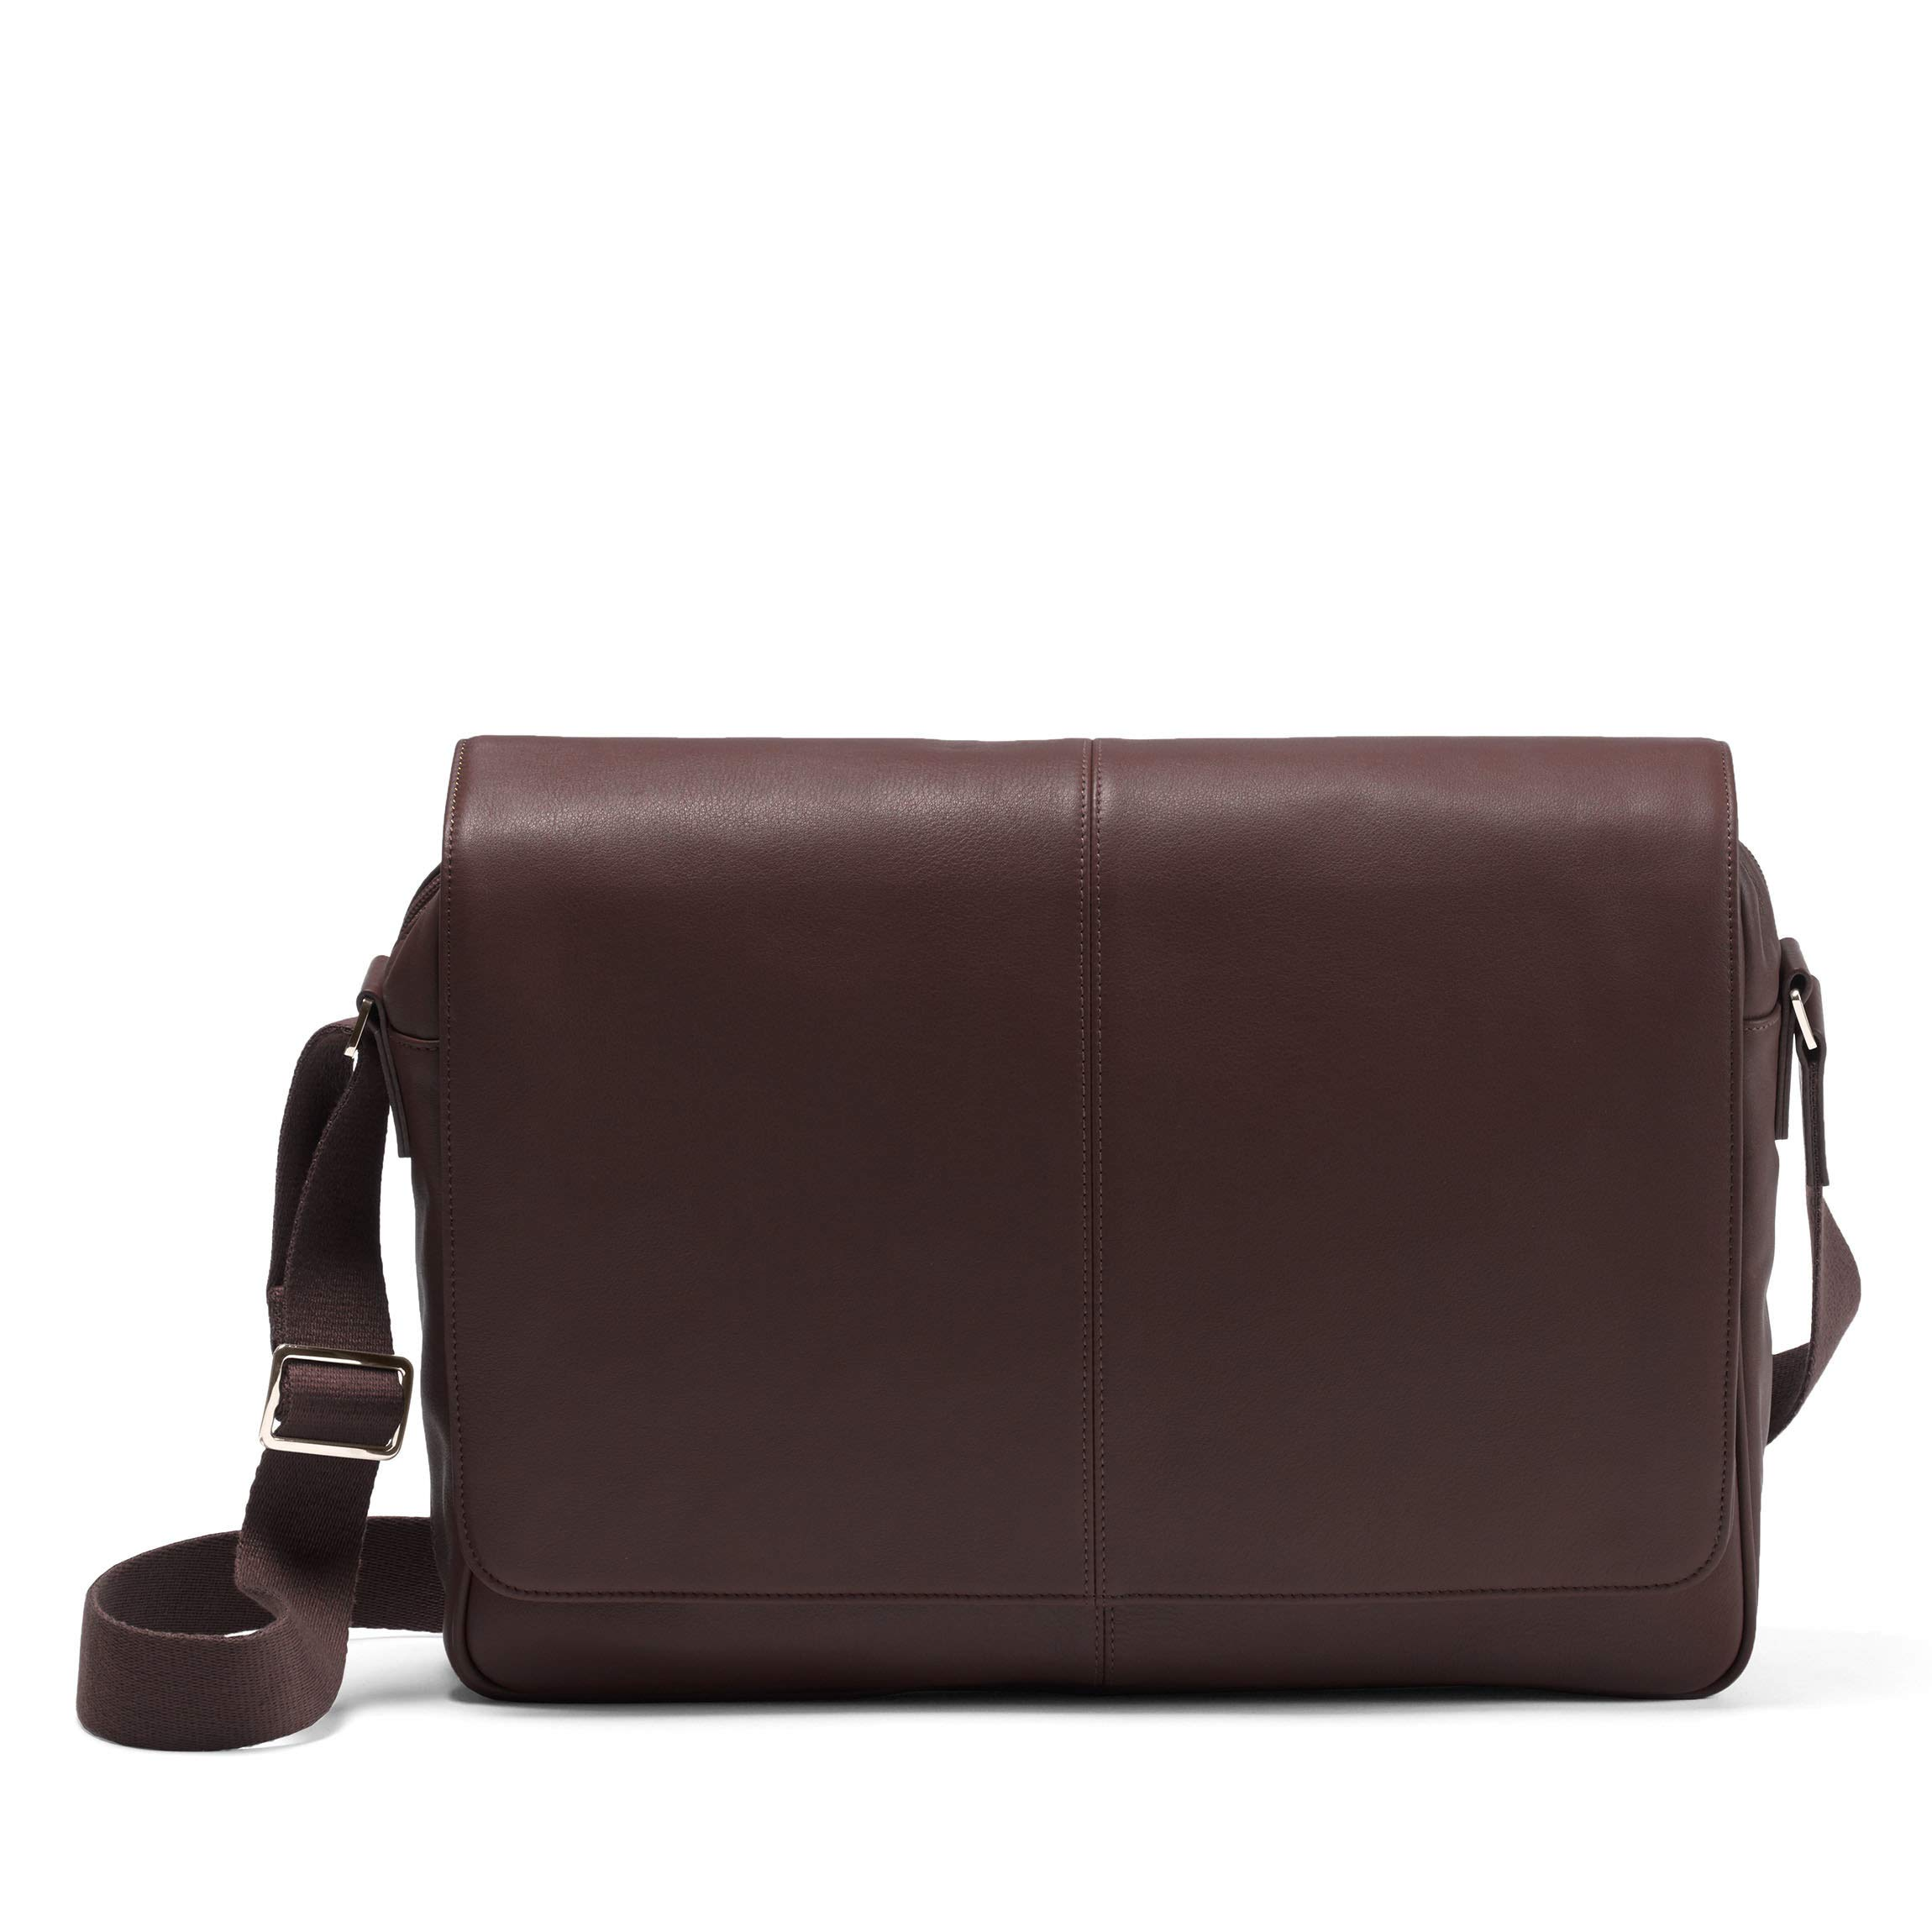 Laptop Messenger Bag - Full Grain Leather Leather - Brown (brown)